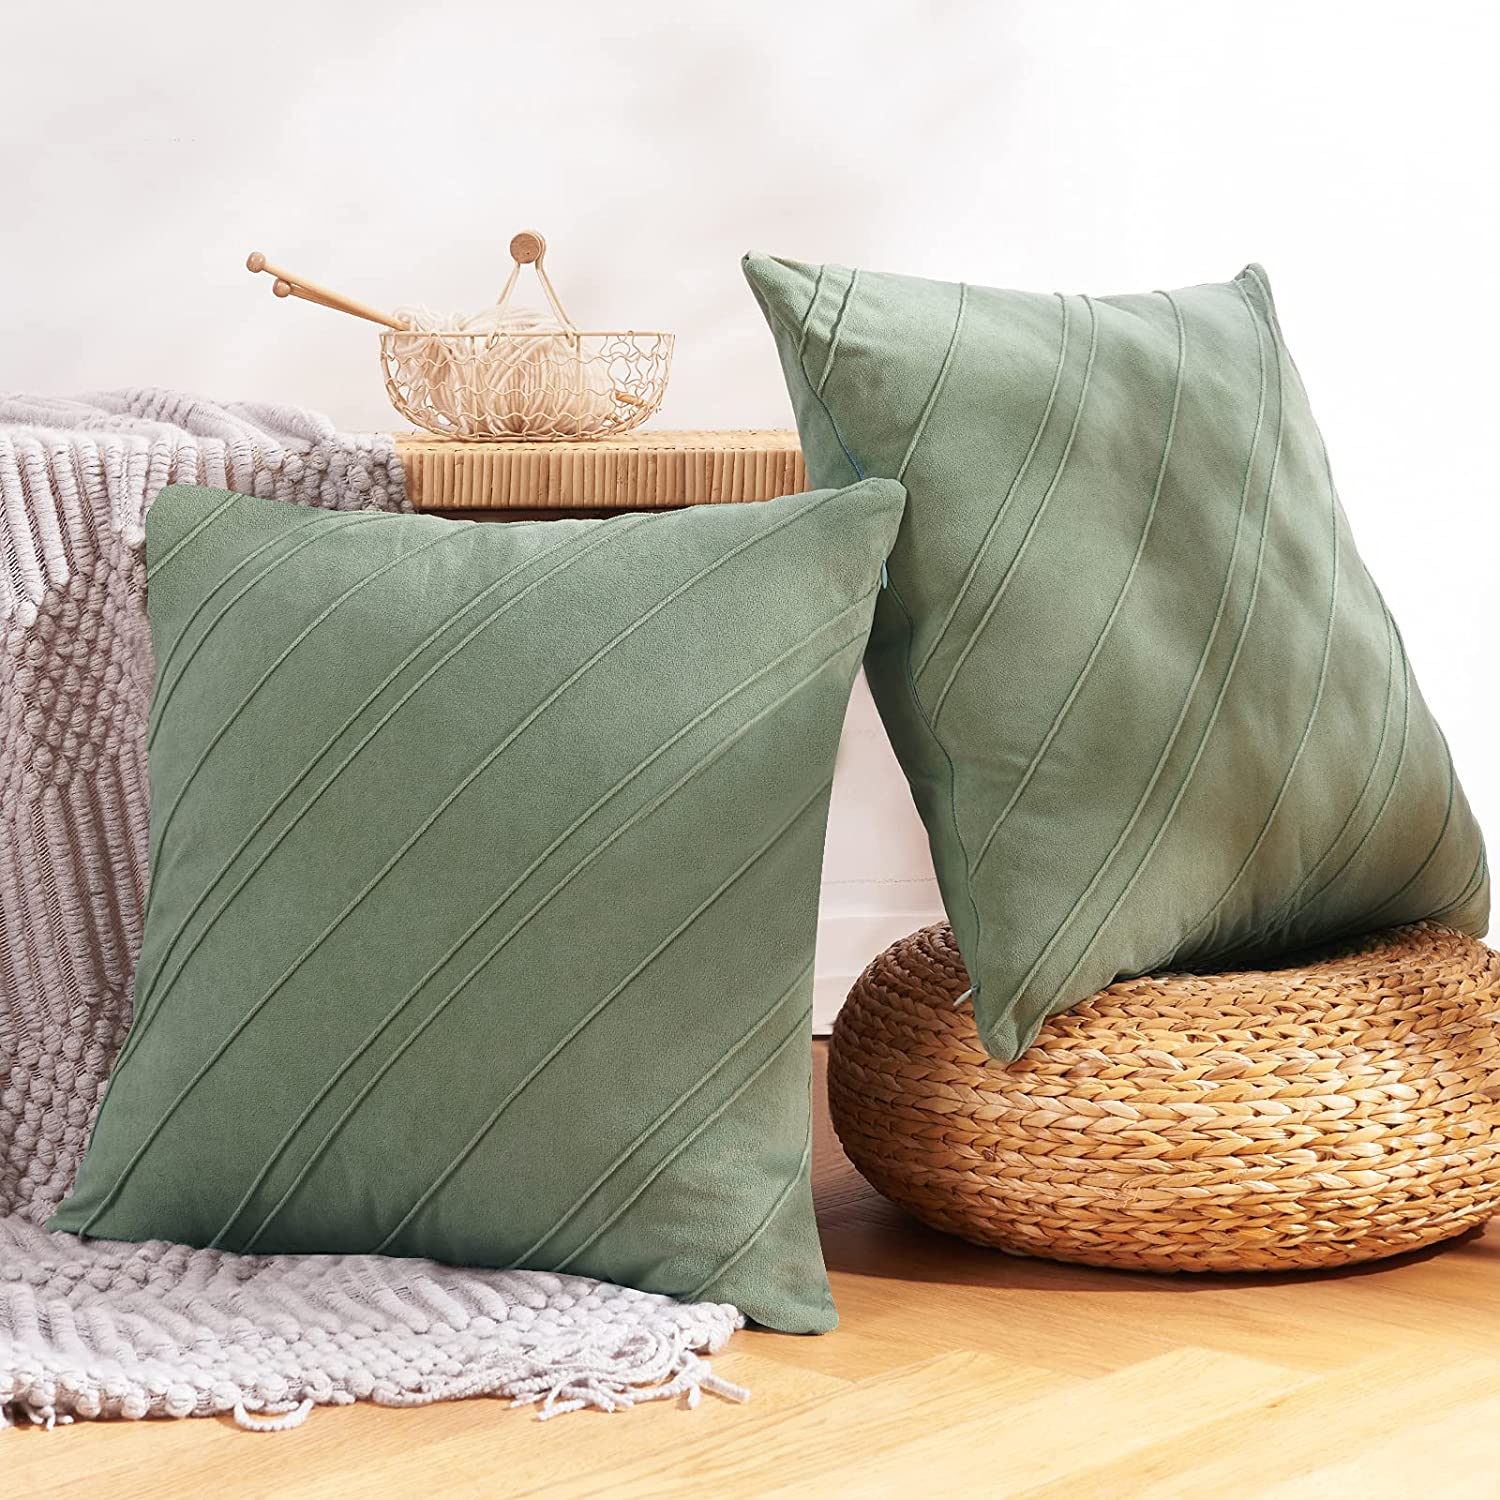 NEERYO Set of 2 Striped Fringe Decorative Throw Pillow Covers Square Soft Boho Farmhouse Cushion Cover for Bedroom Sofa Living Room Couch Decor 18 x 18 Inches Patina Green